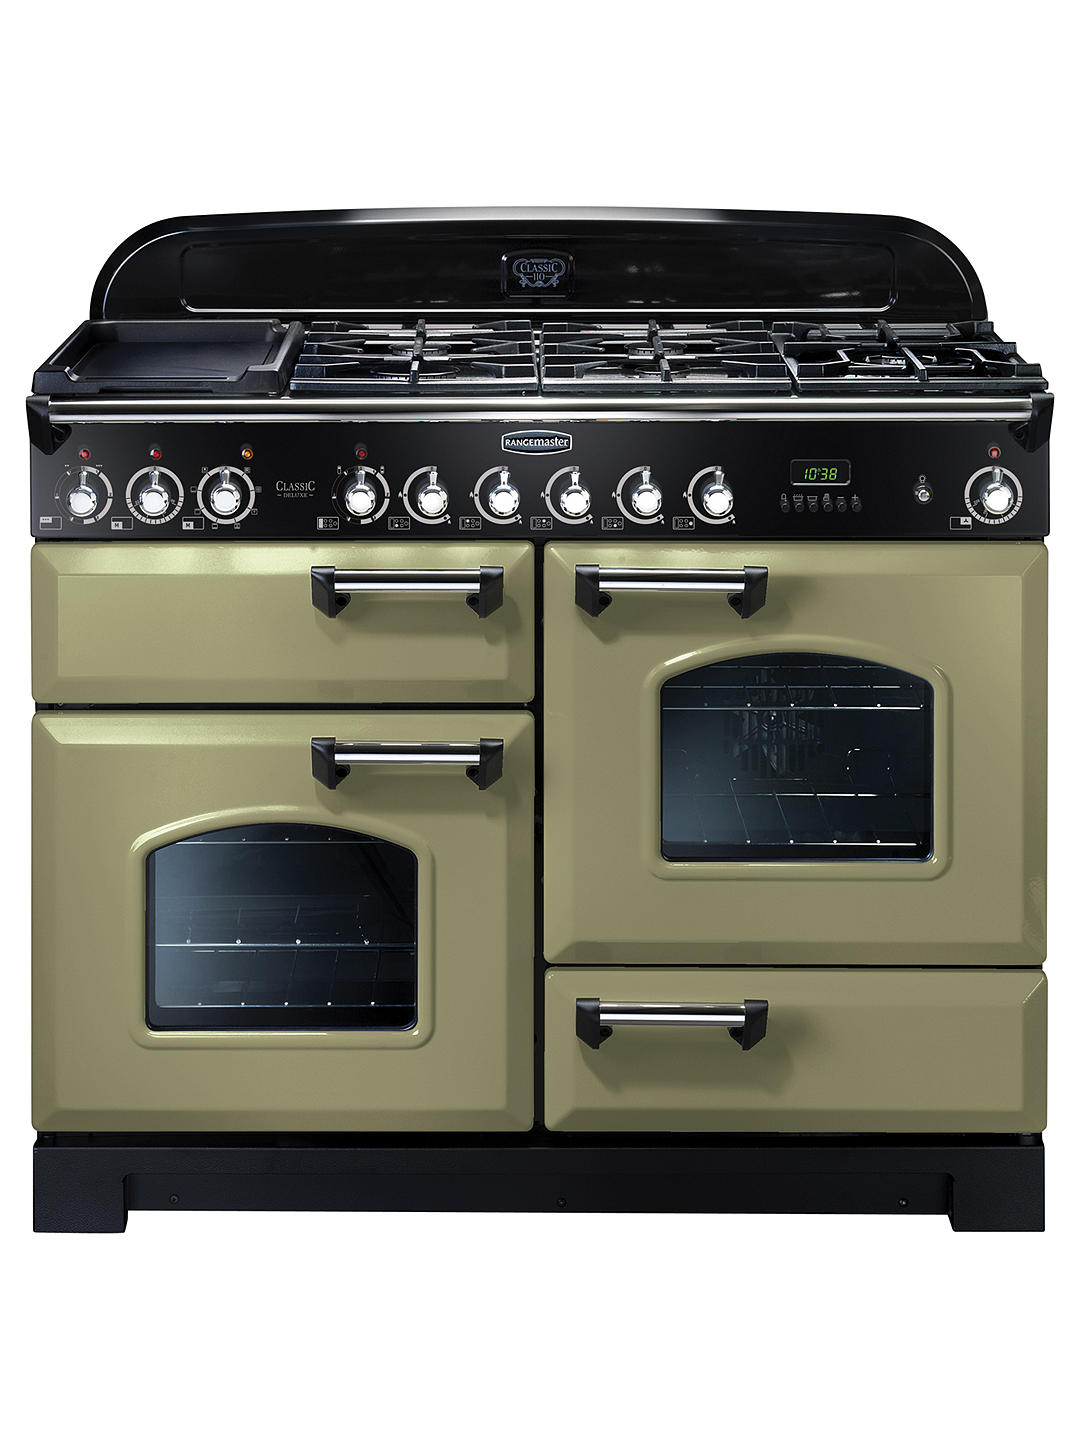 Buy Rangemaster Classic Deluxe 110 Dual Fuel Range Cooker, Green/Chrome Trim Online at johnlewis.com